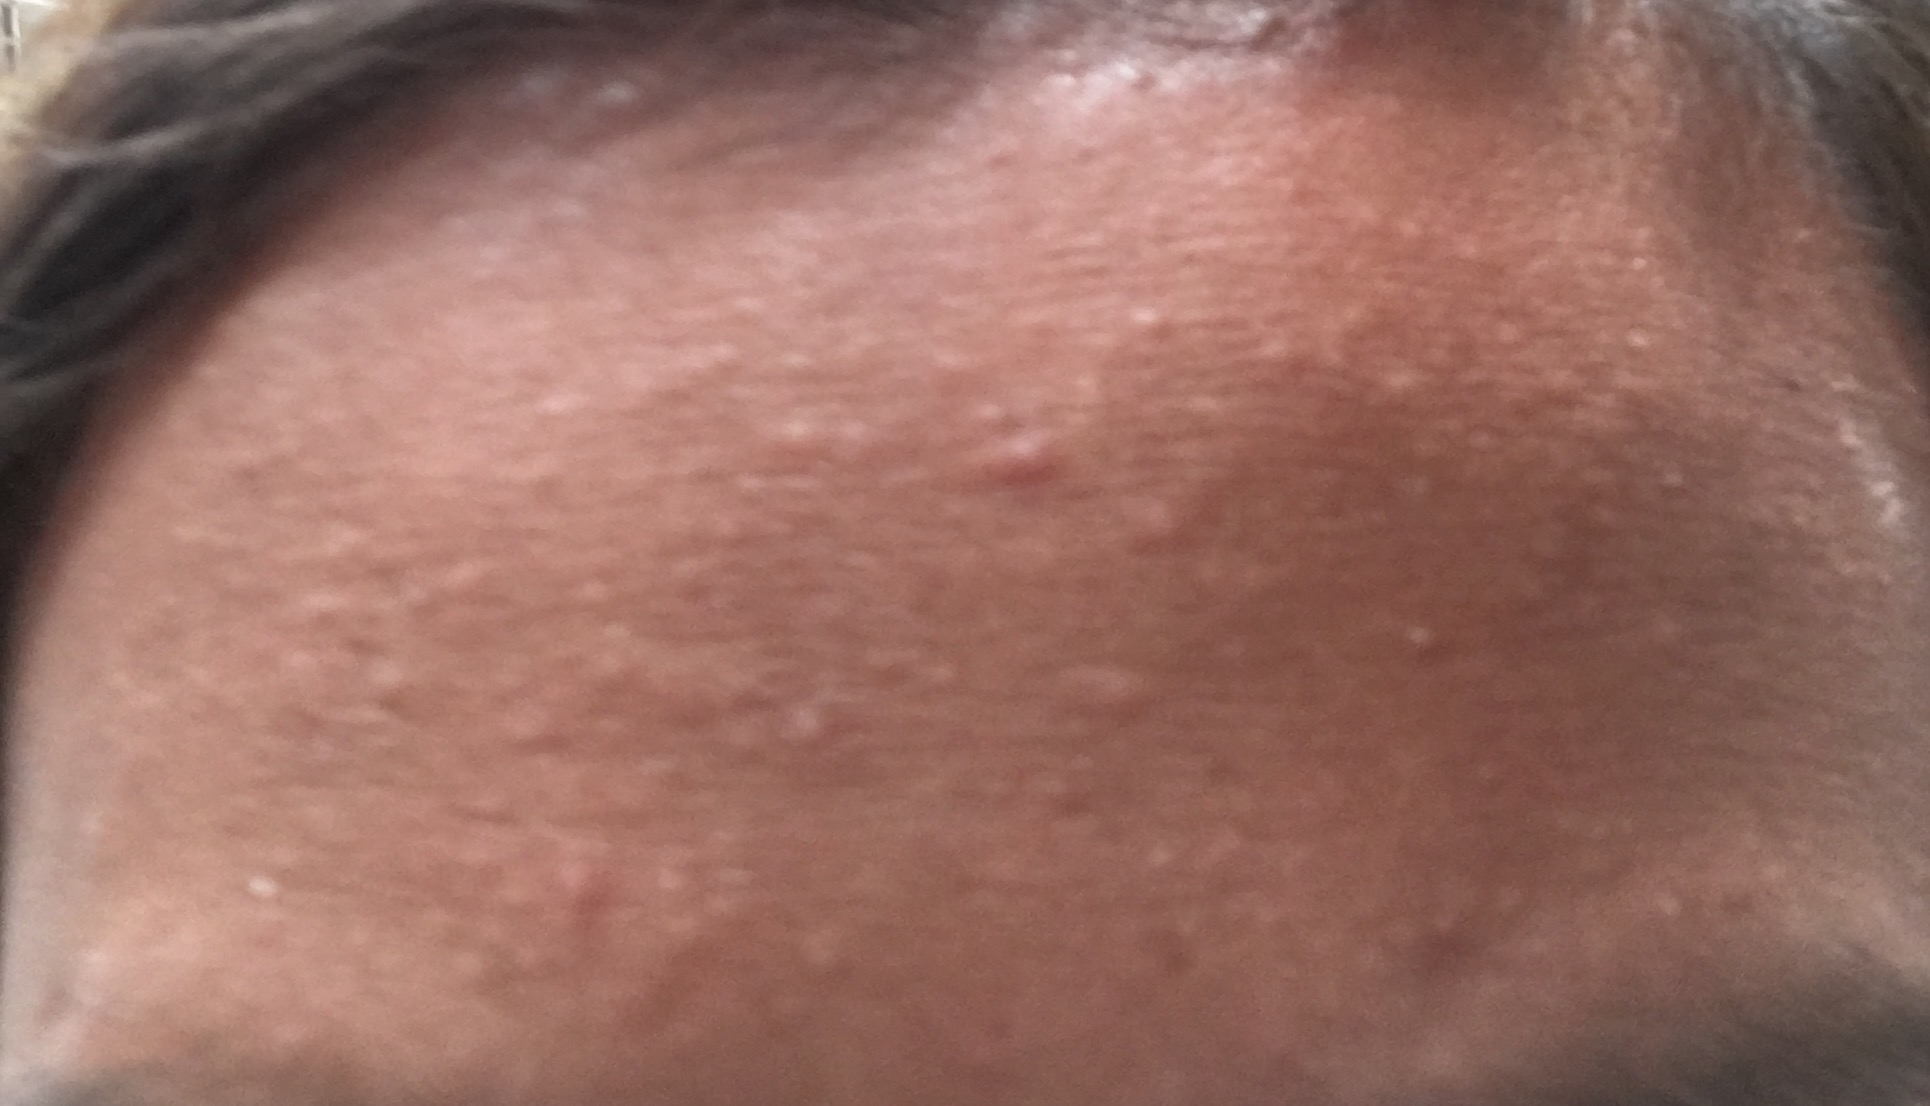 Small Bumps On Forehead General Acne Discussion Acne Org